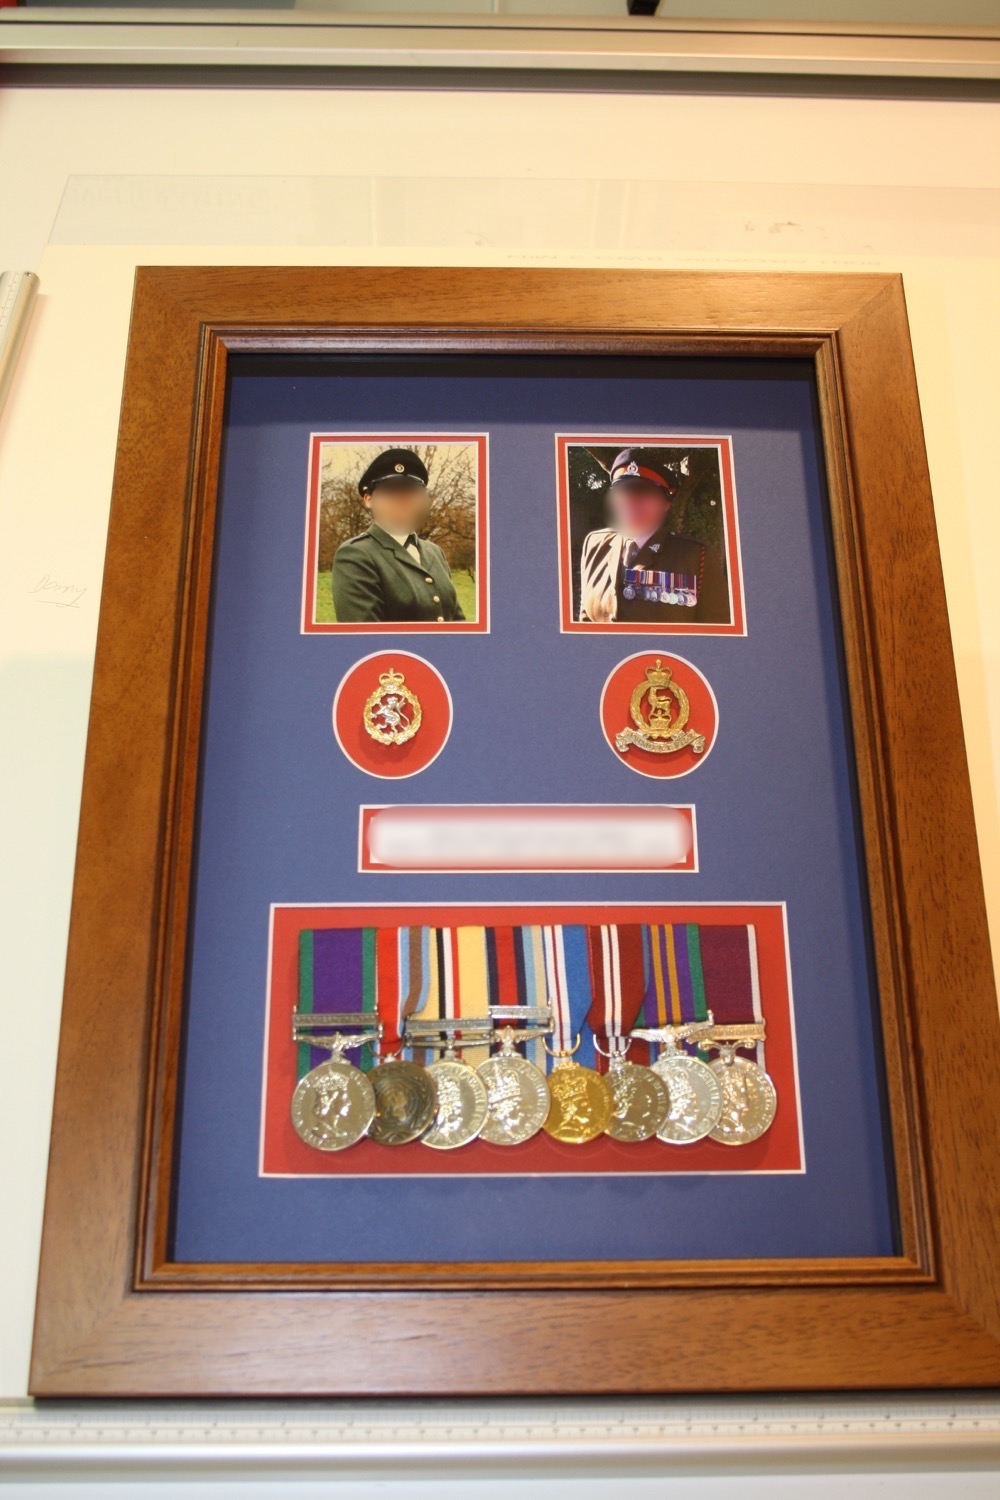 hampshire-picture-framing-medals-009.JPG